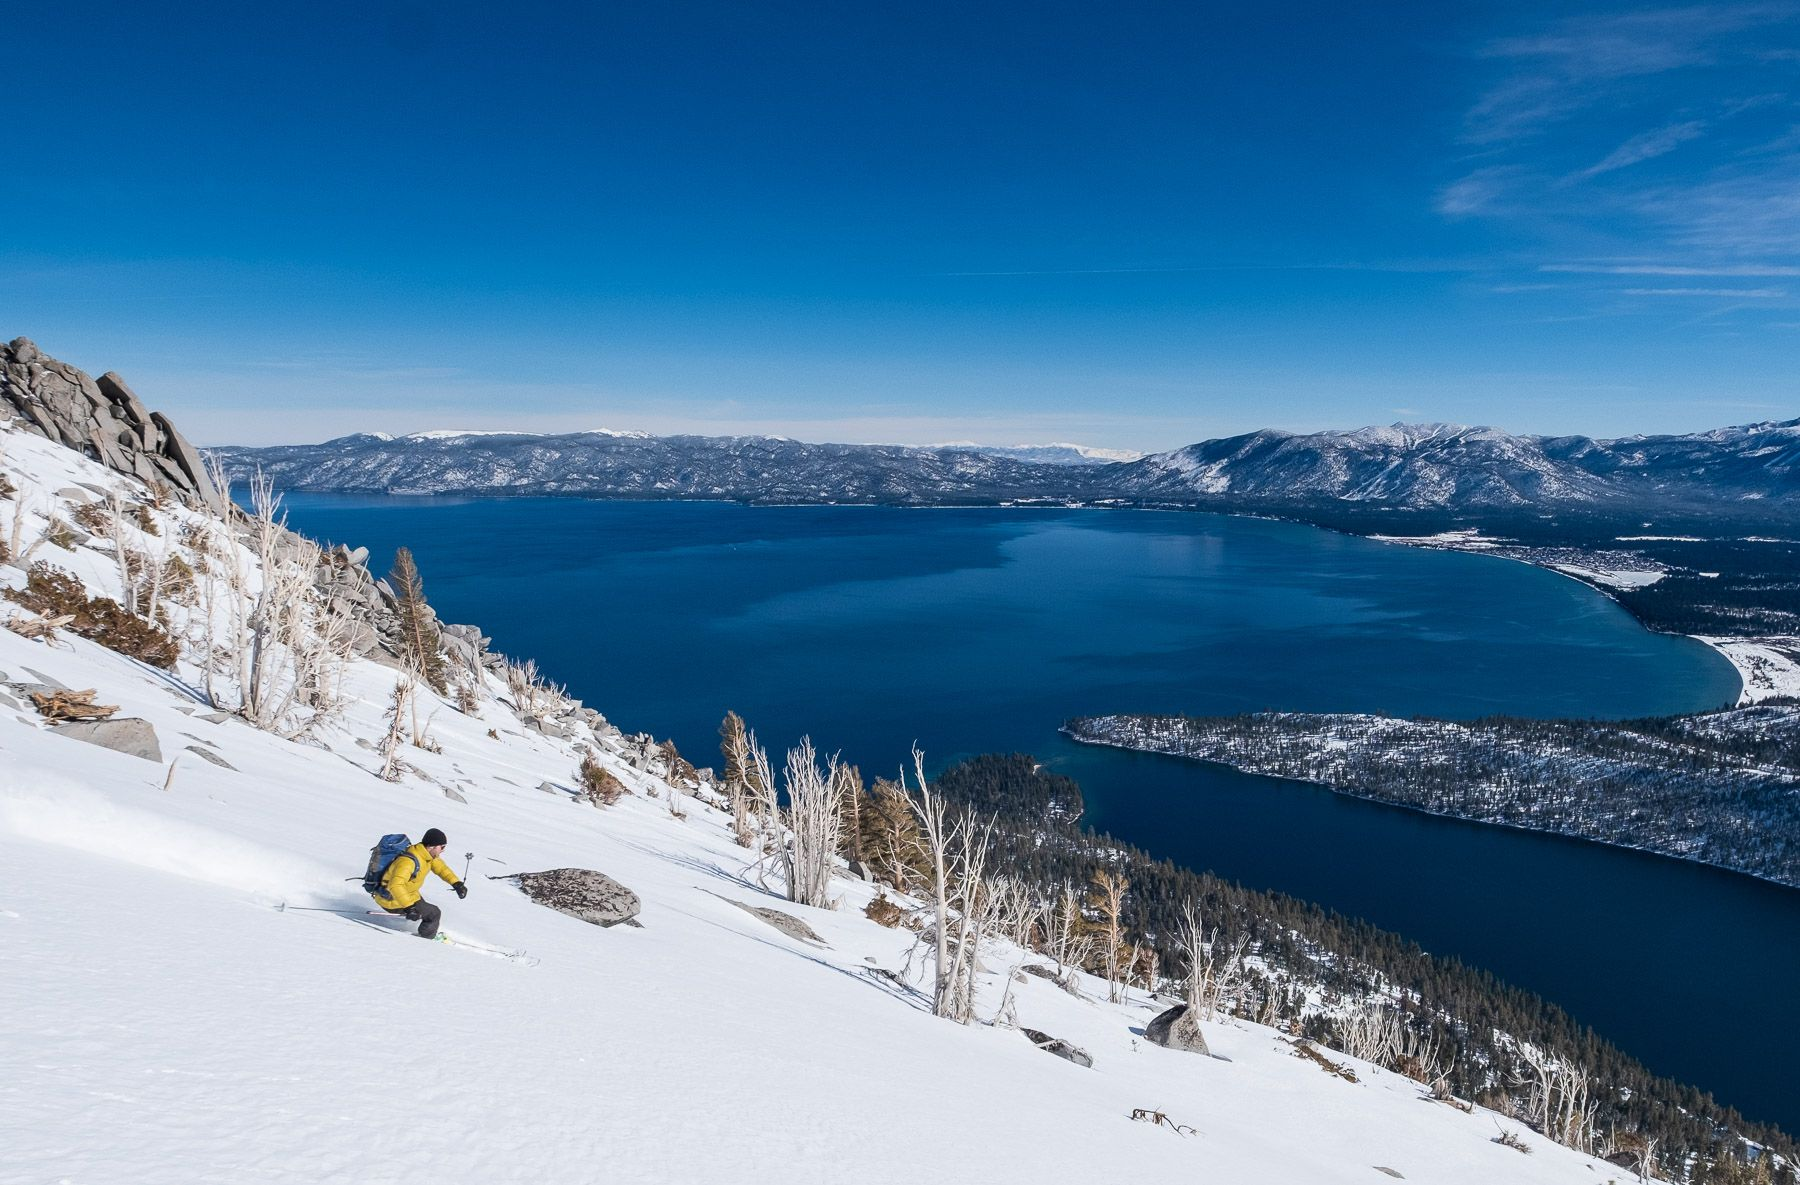 Backcountry skiing above lake Tahoe